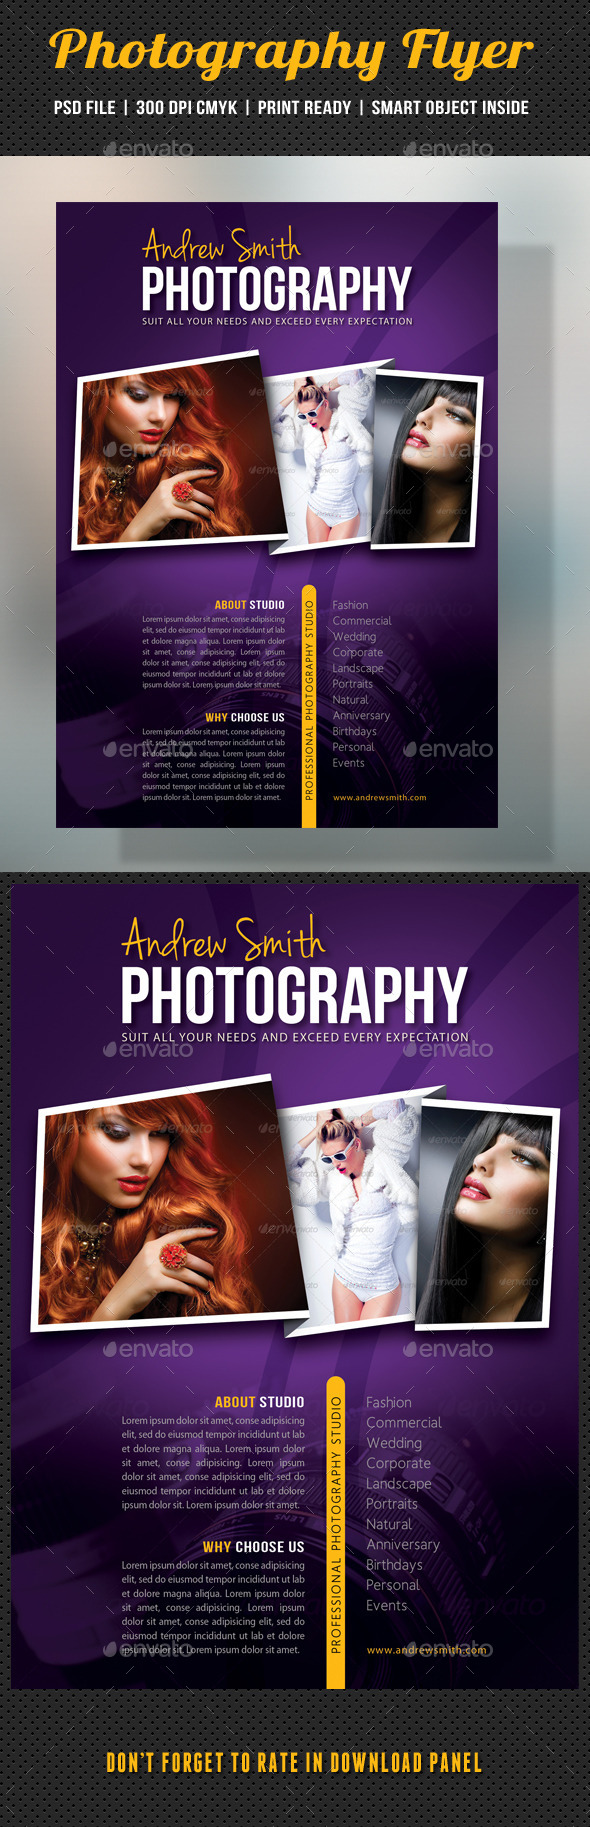 Photography Studio Flyer 13 - Corporate Flyers